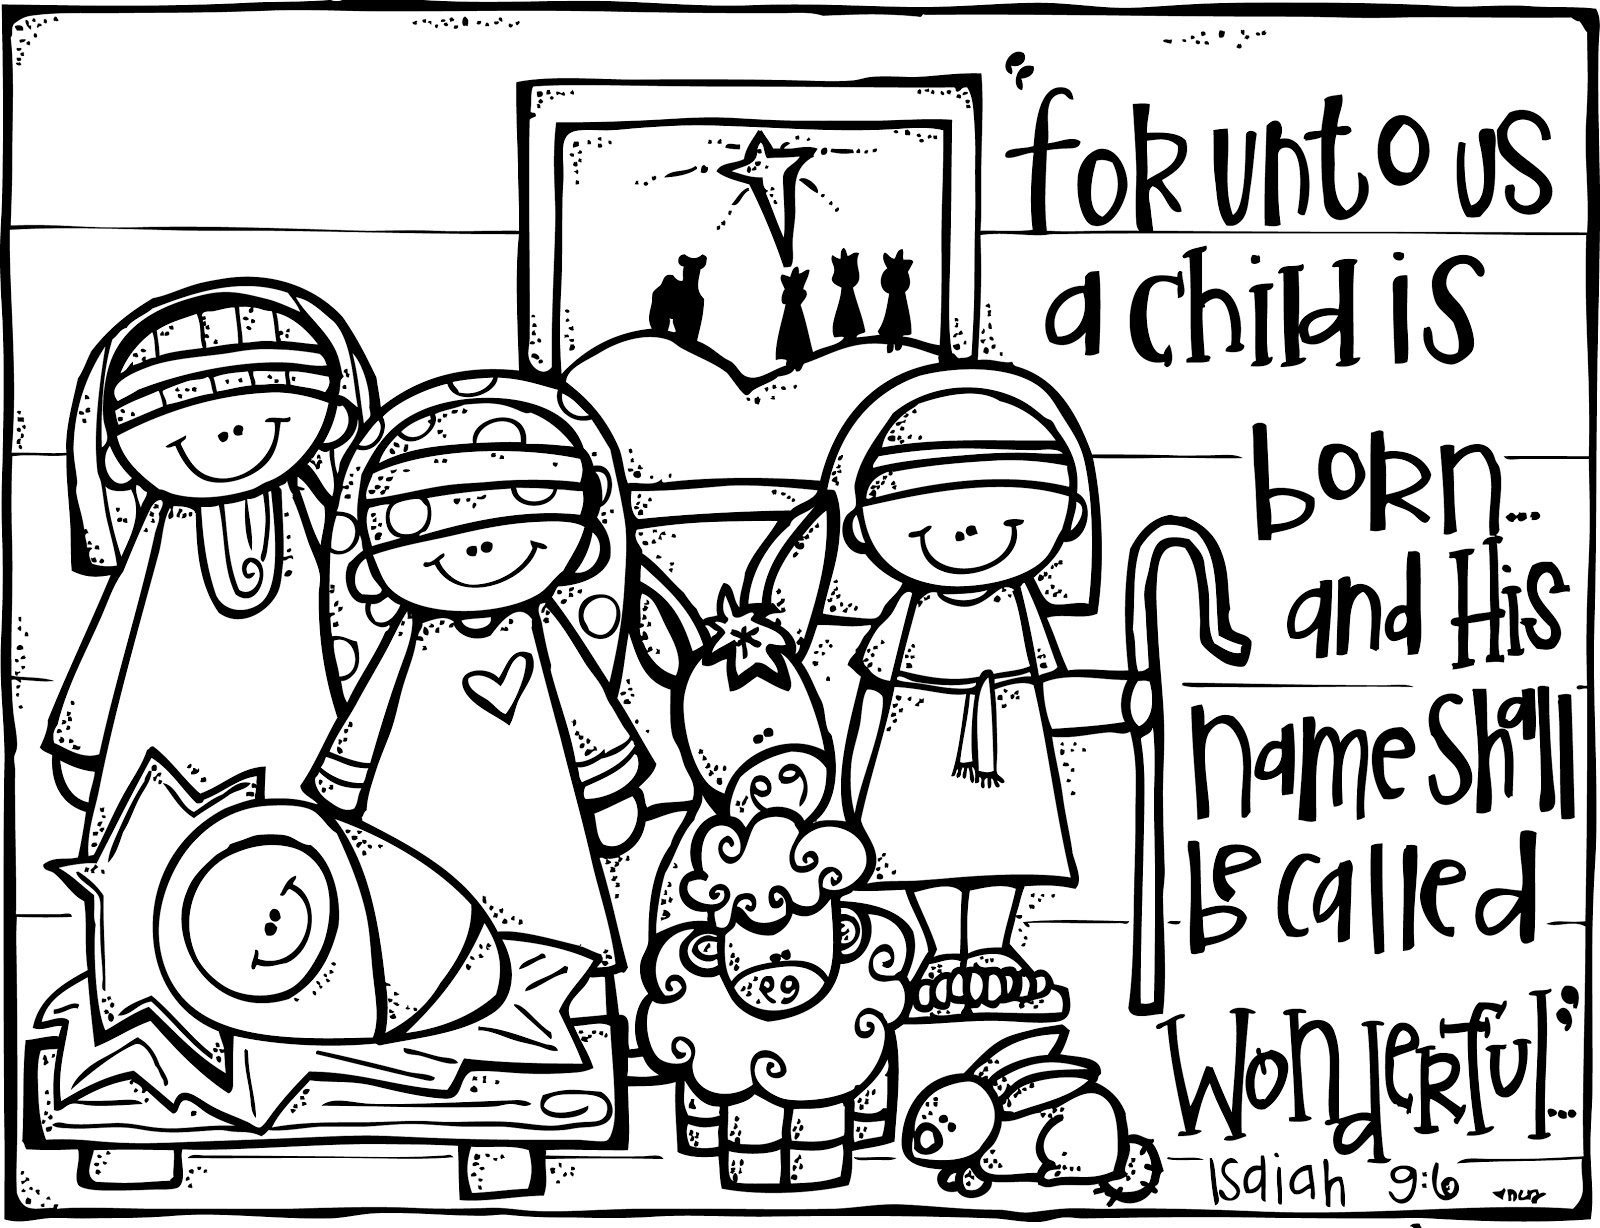 Free black and white large print christmas clipart image Nativity black and white large print black and white religious ... image